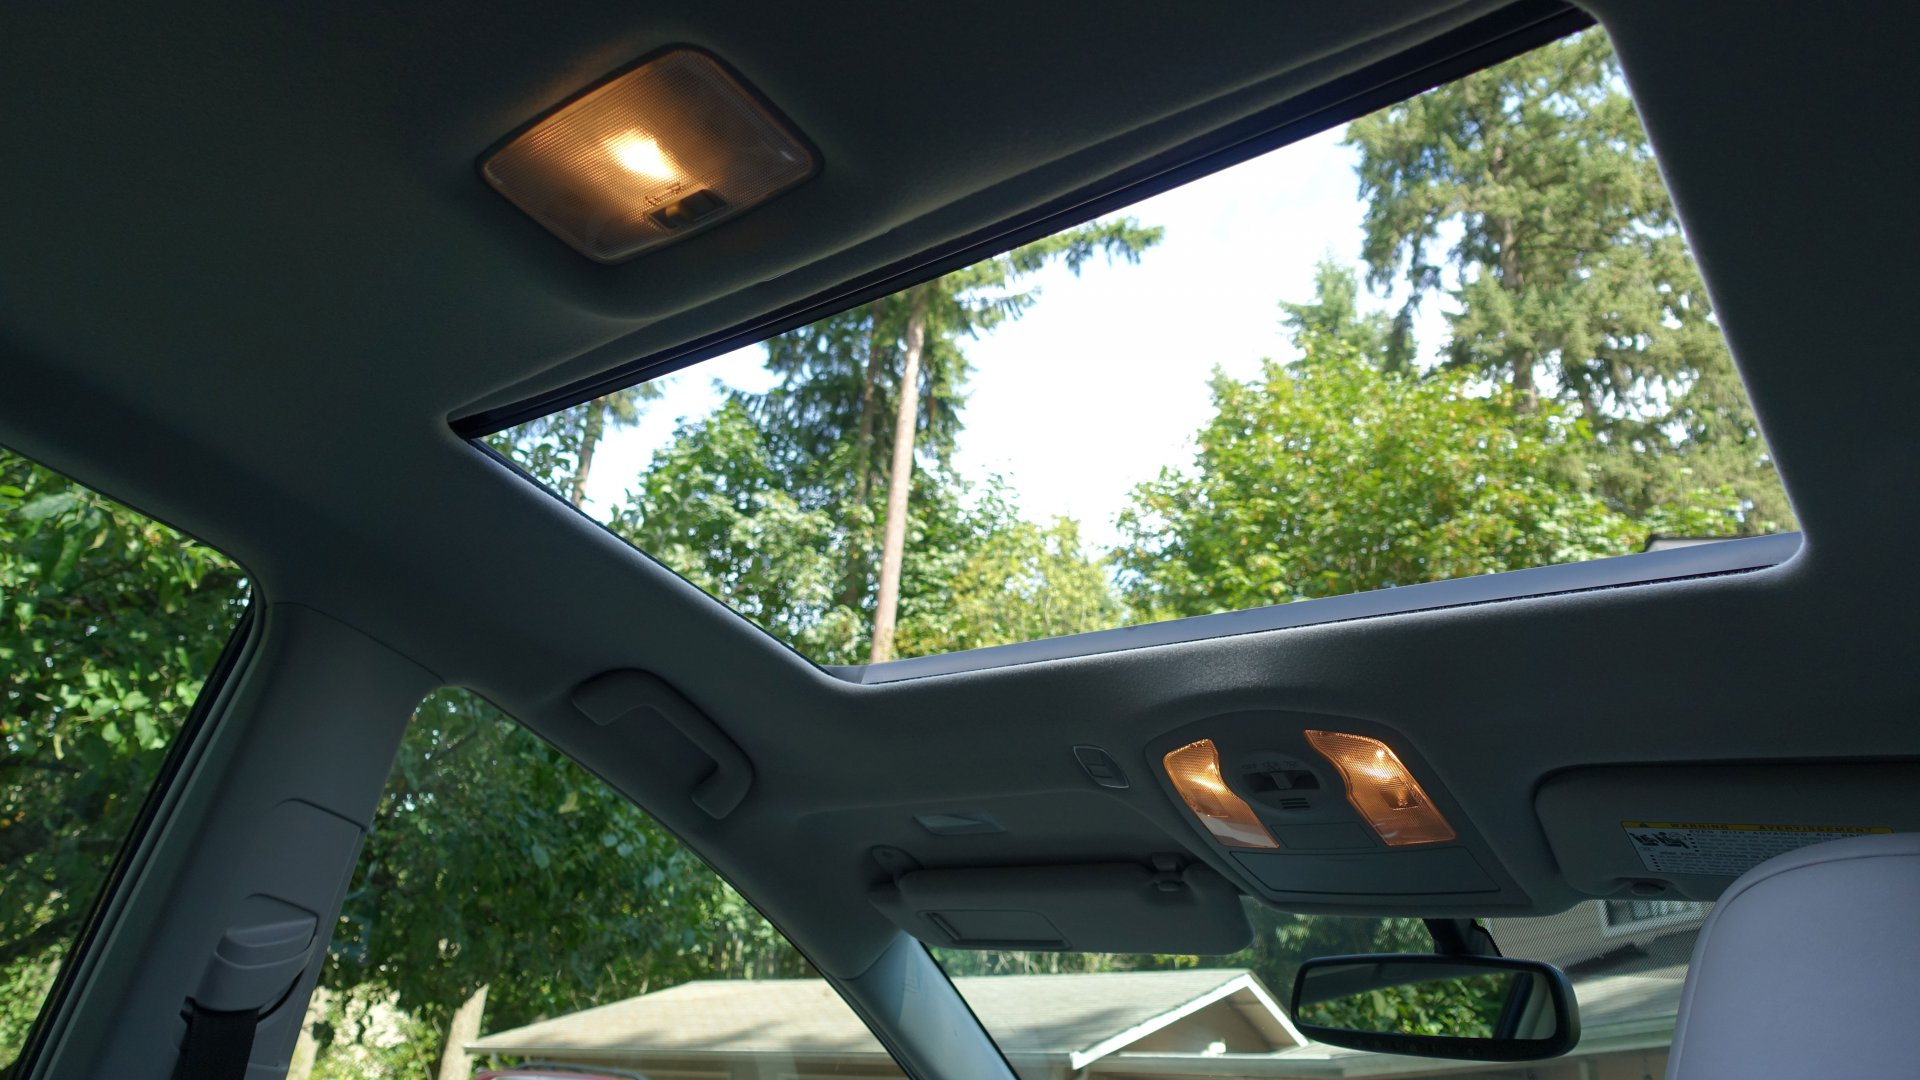 2015 Prius V Aftermarket Sunroof Priuschat